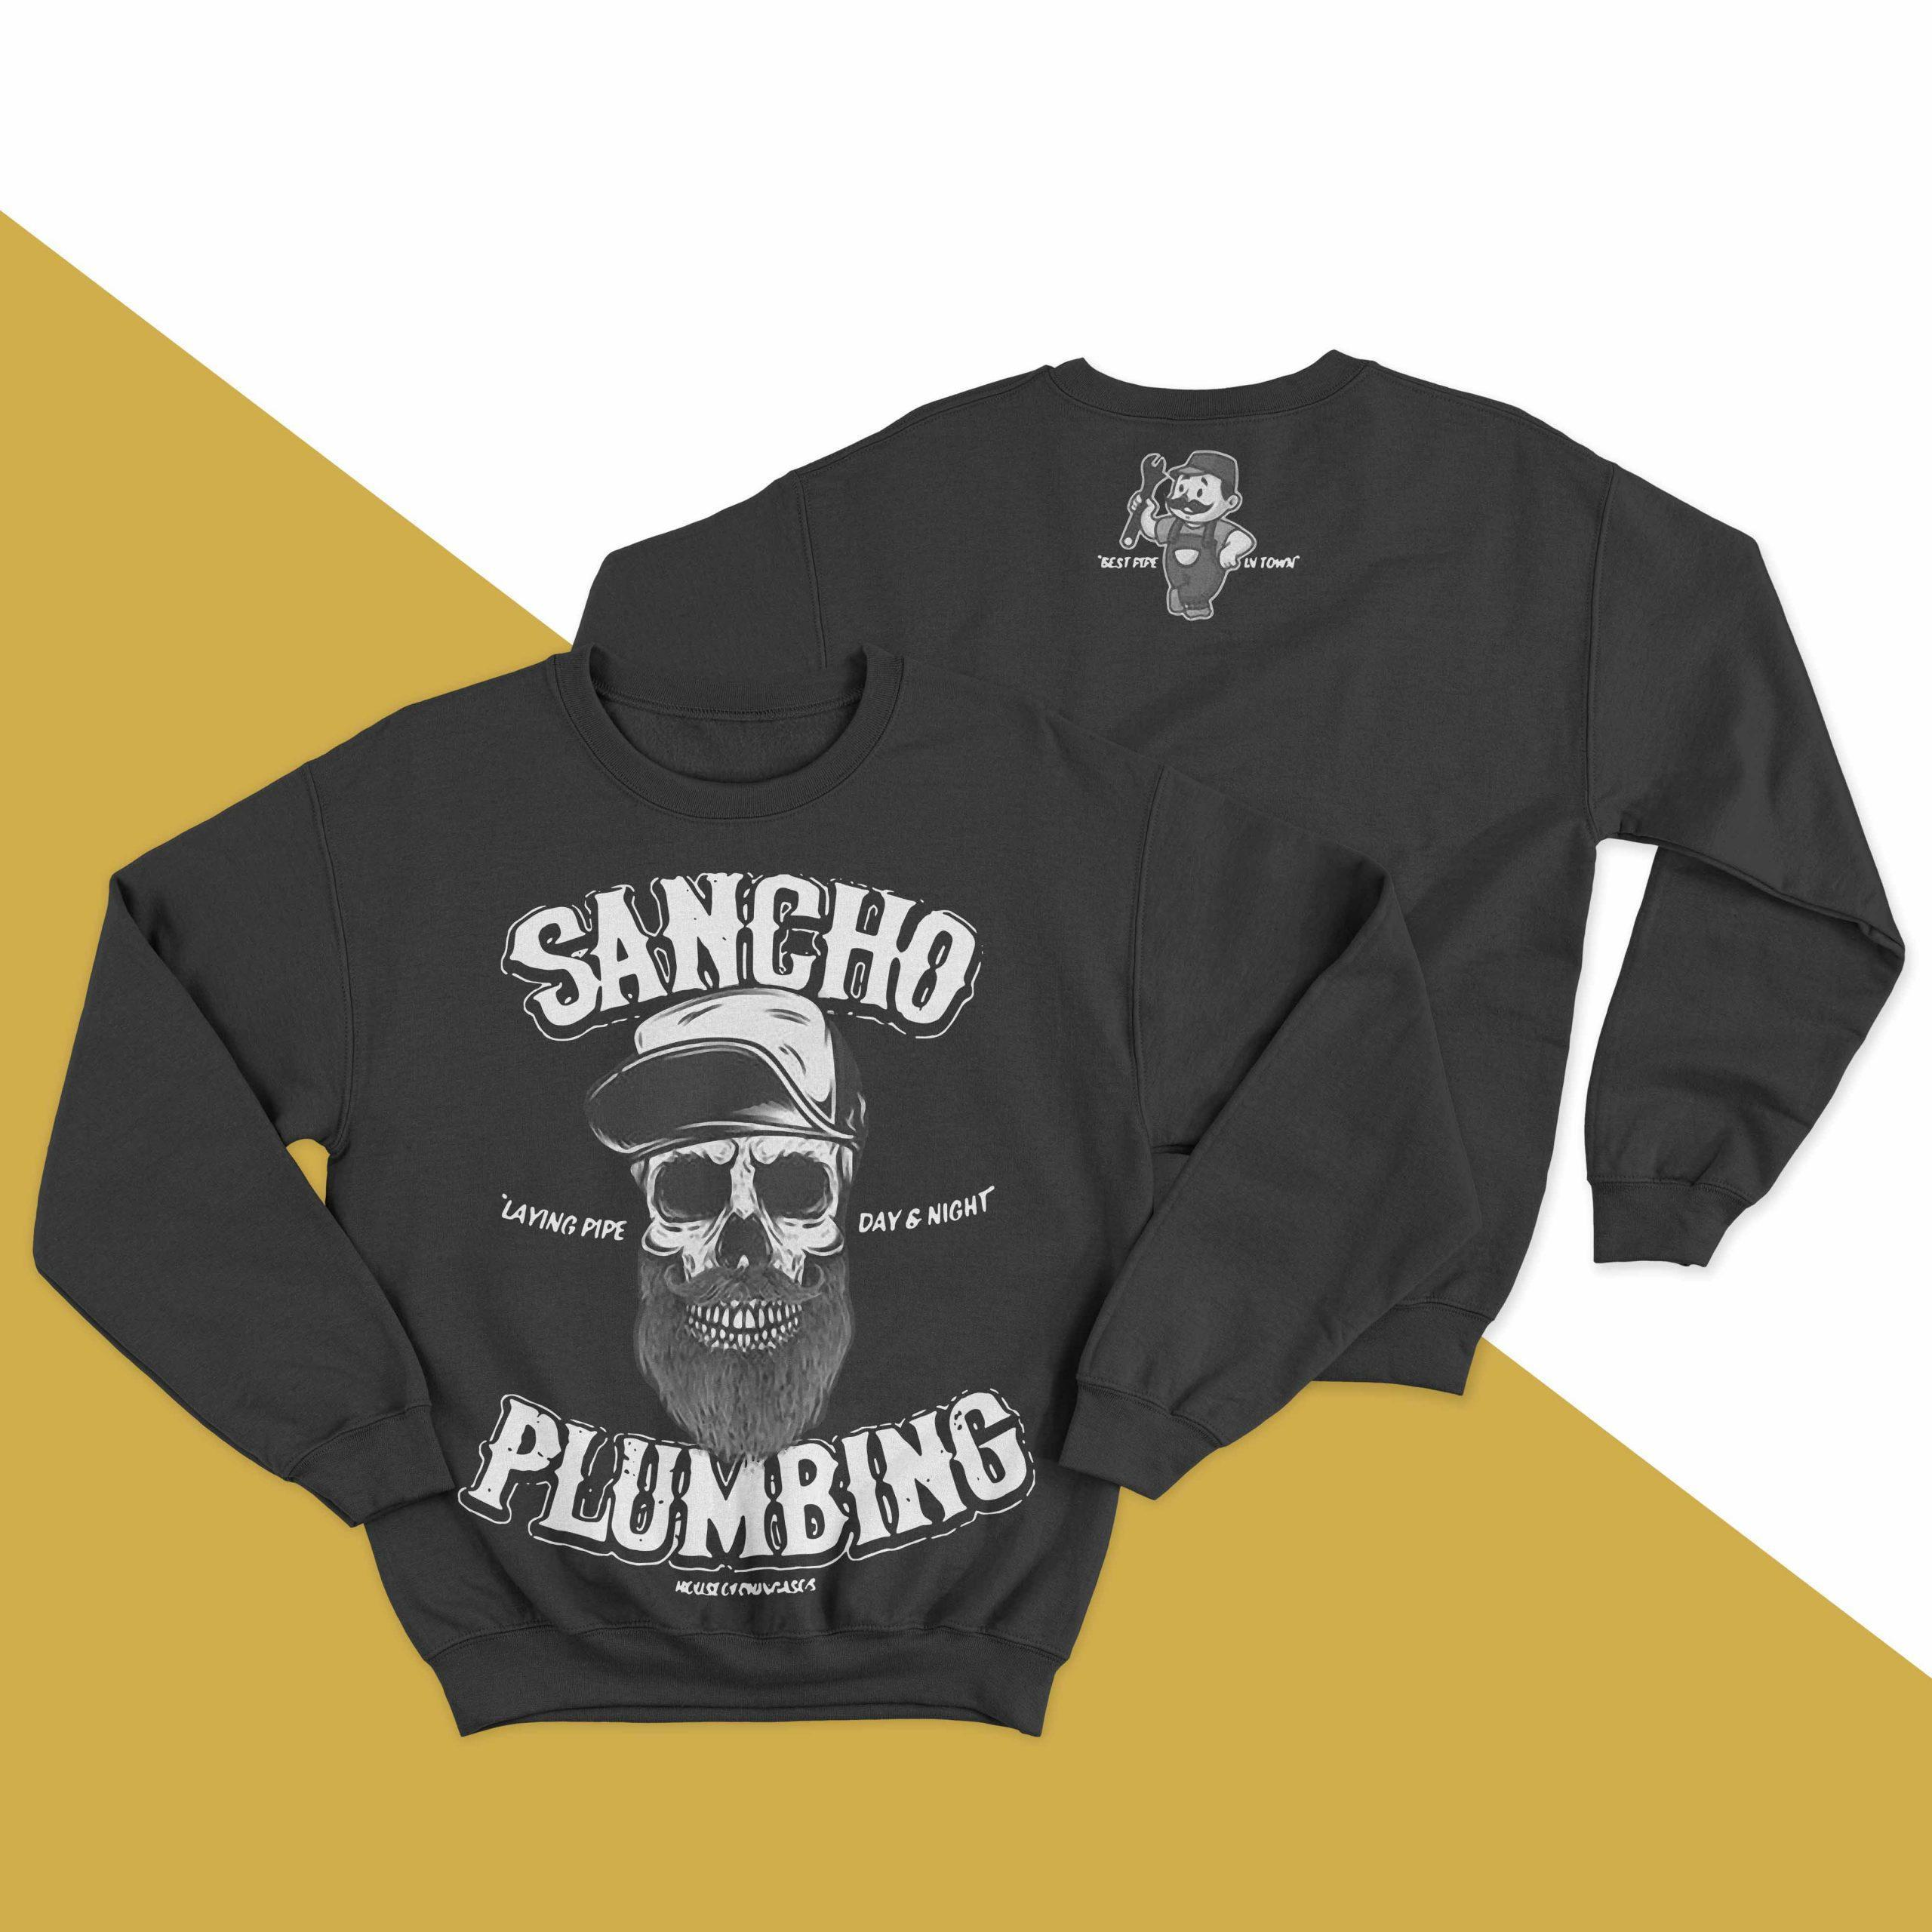 Sancho Plumbing Laying Pipe Day And Night Longsleeve